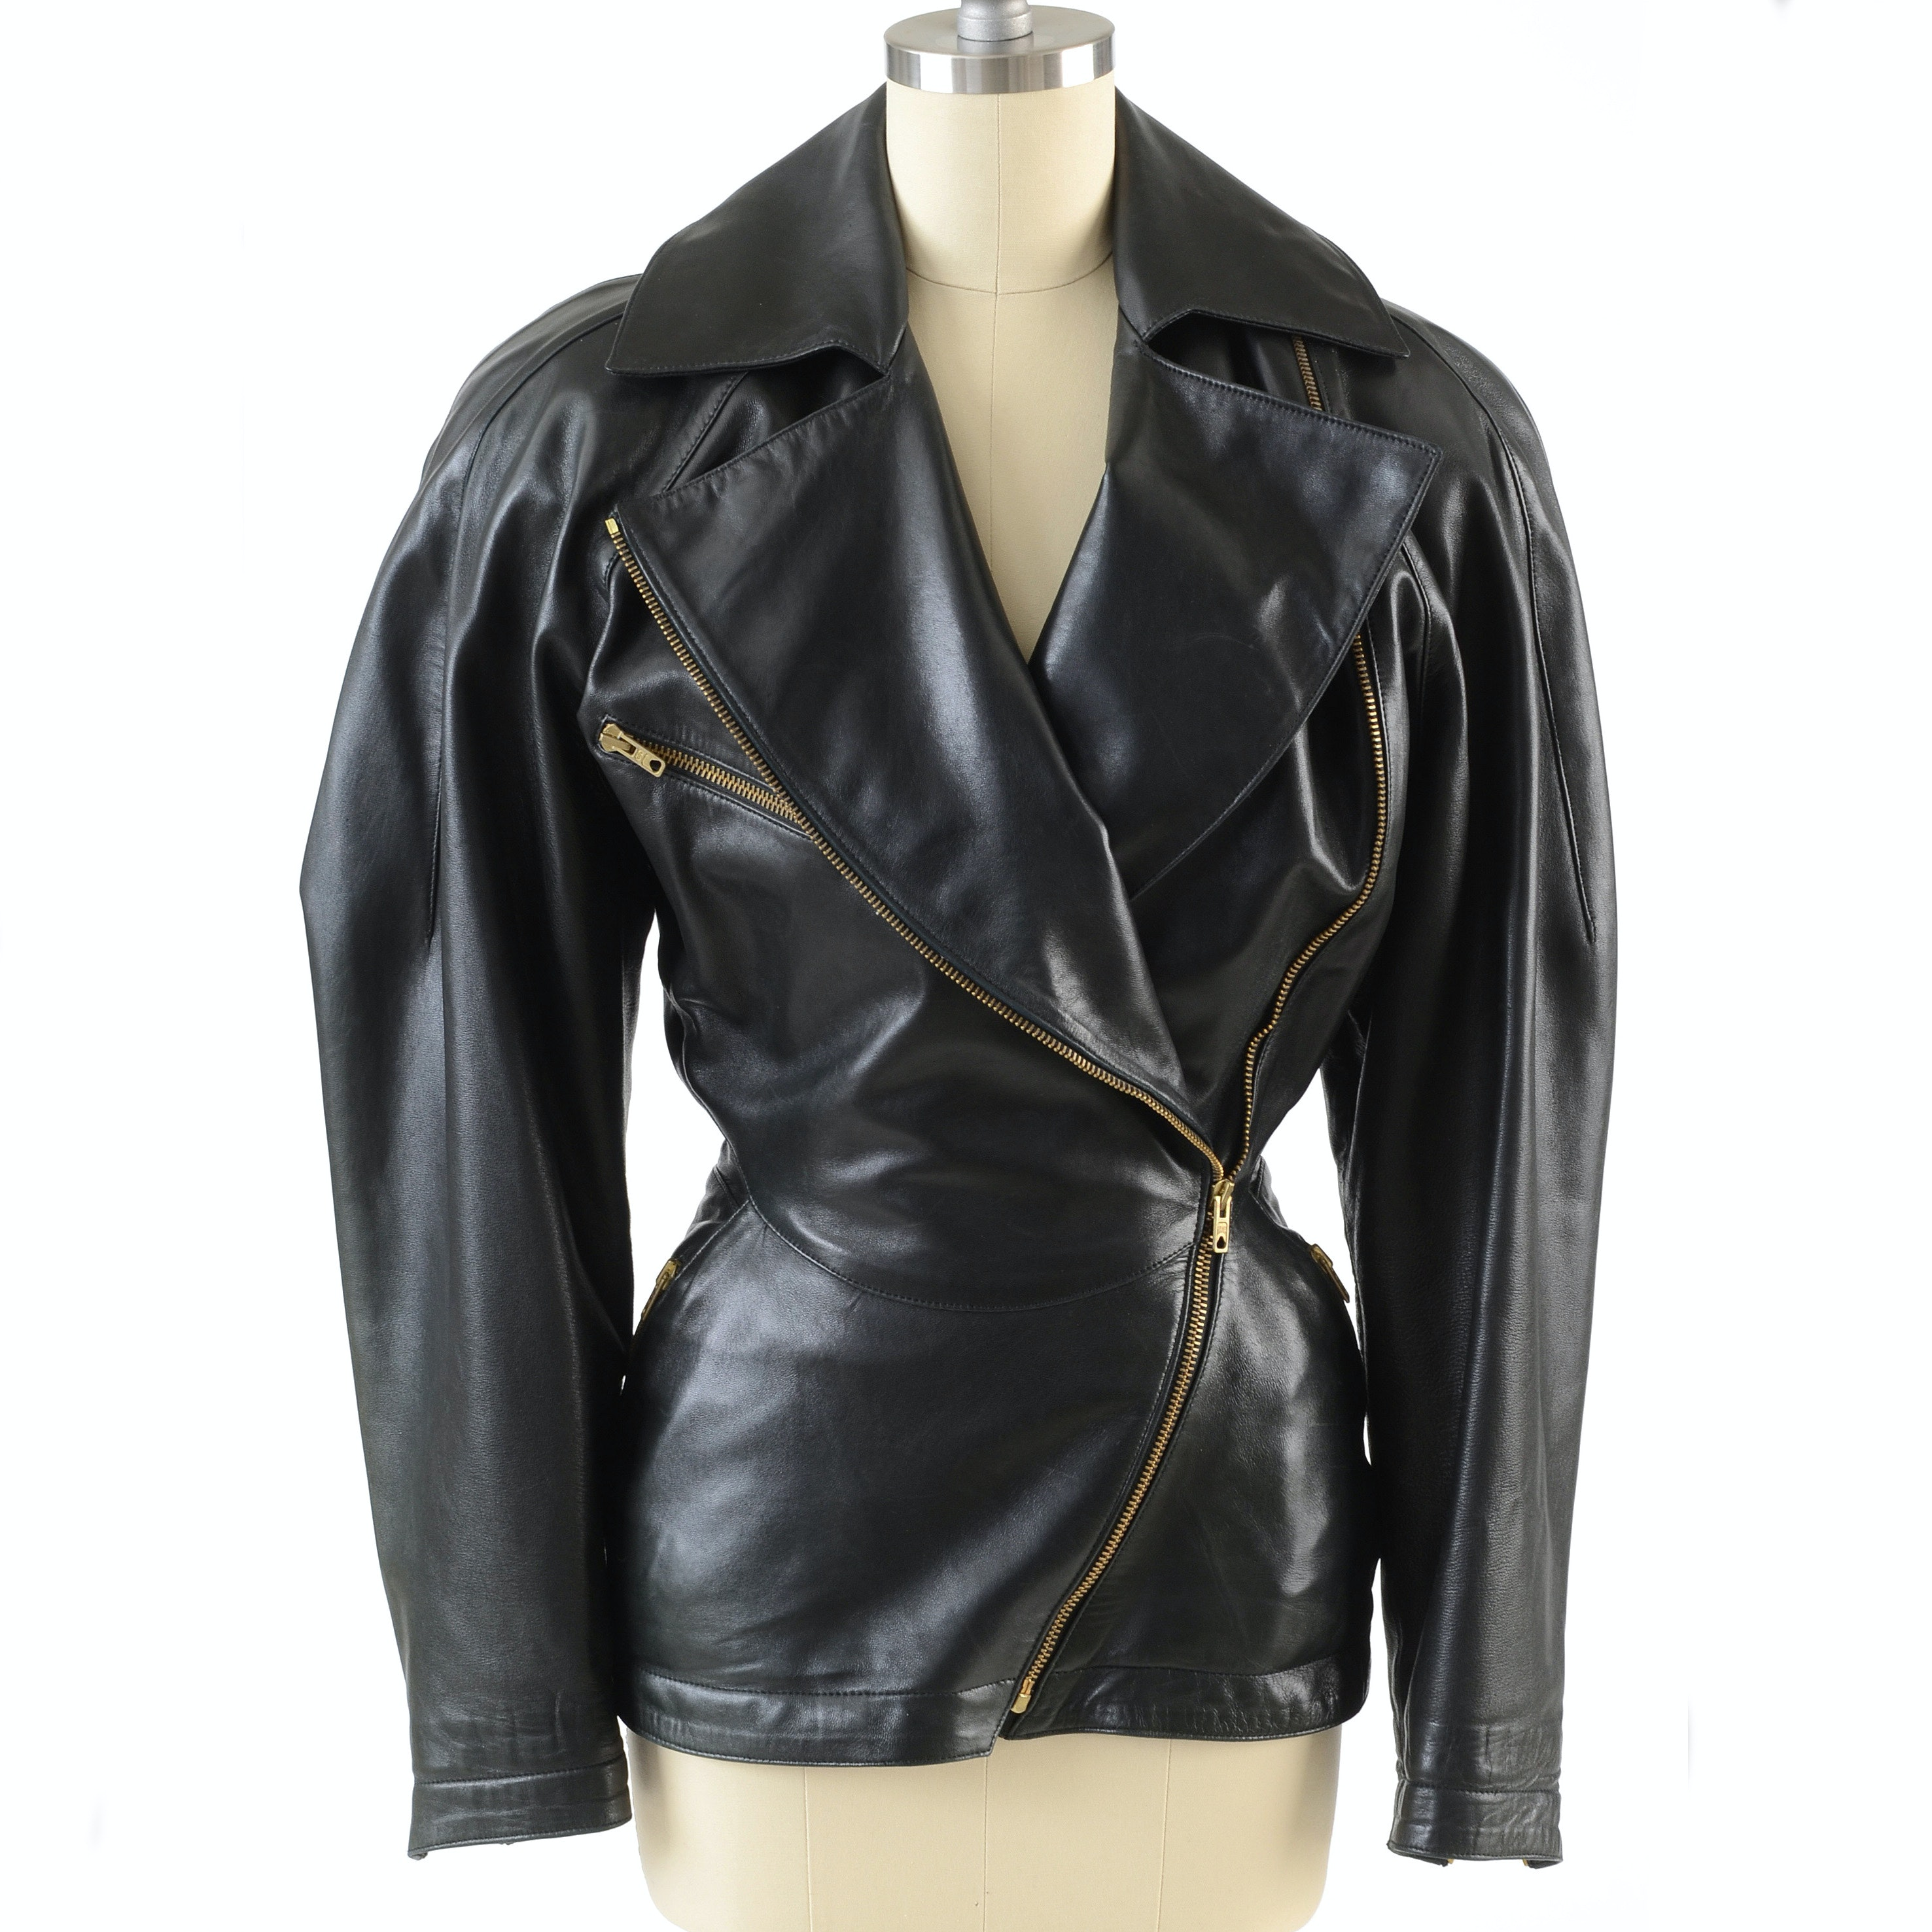 1980s Alaïa of Paris Designer Black Noir Lambskin Leather Jacket